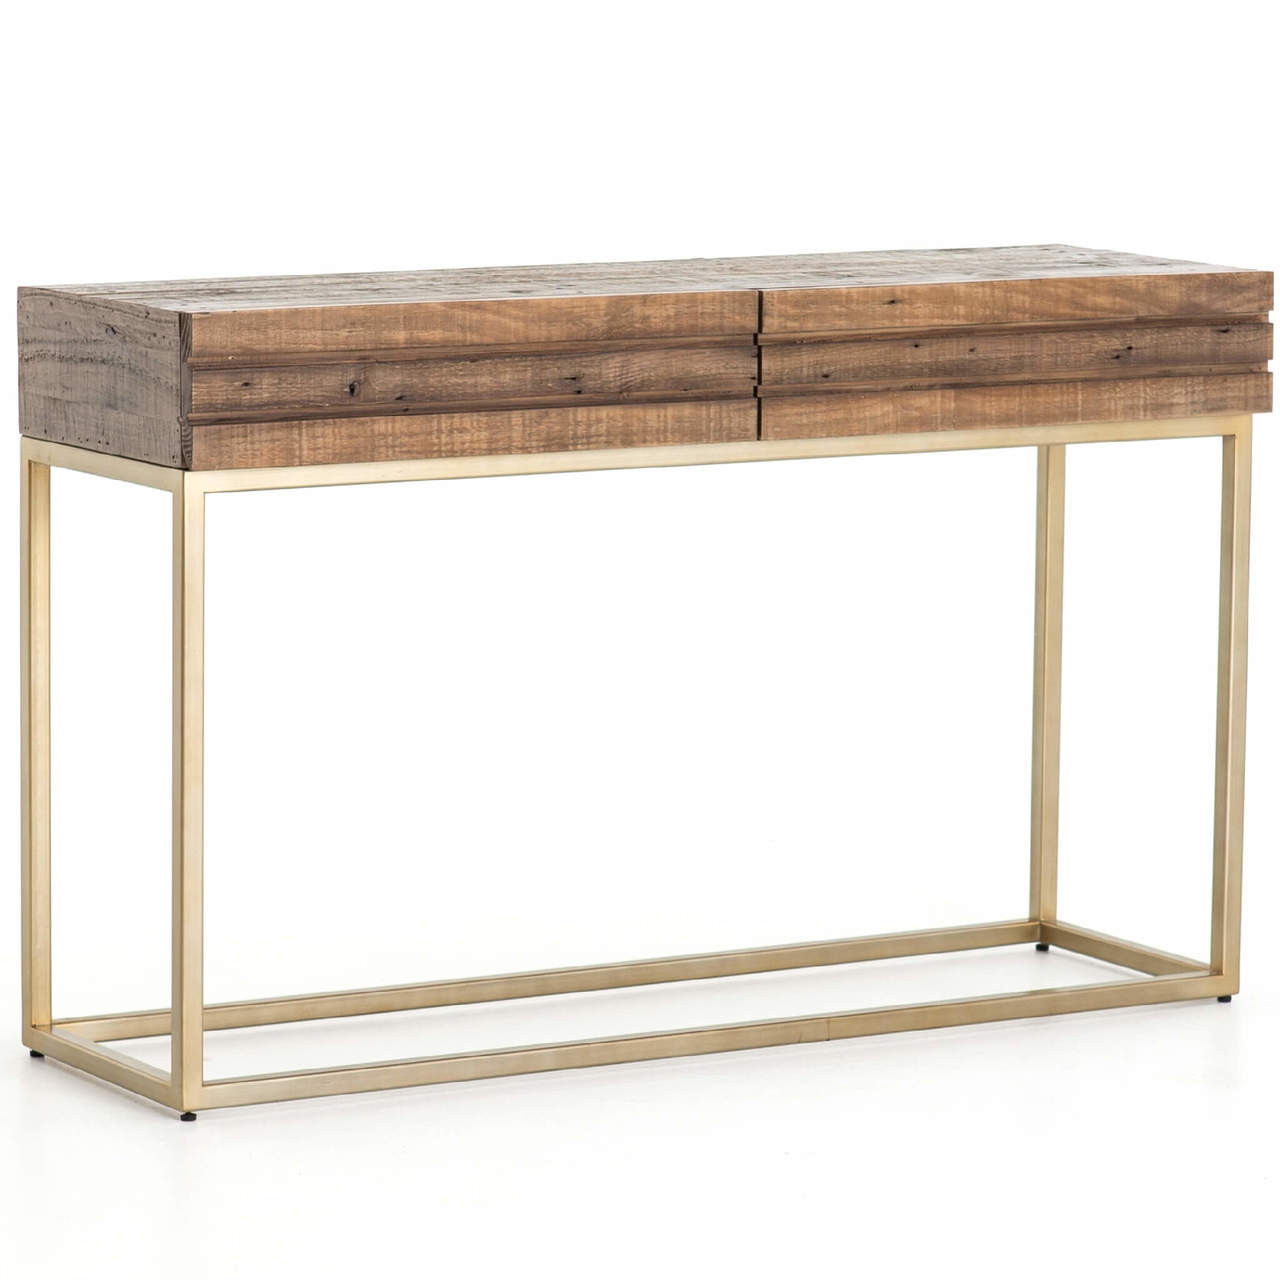 Tiller brass reclaimed wood 2 drawer console table